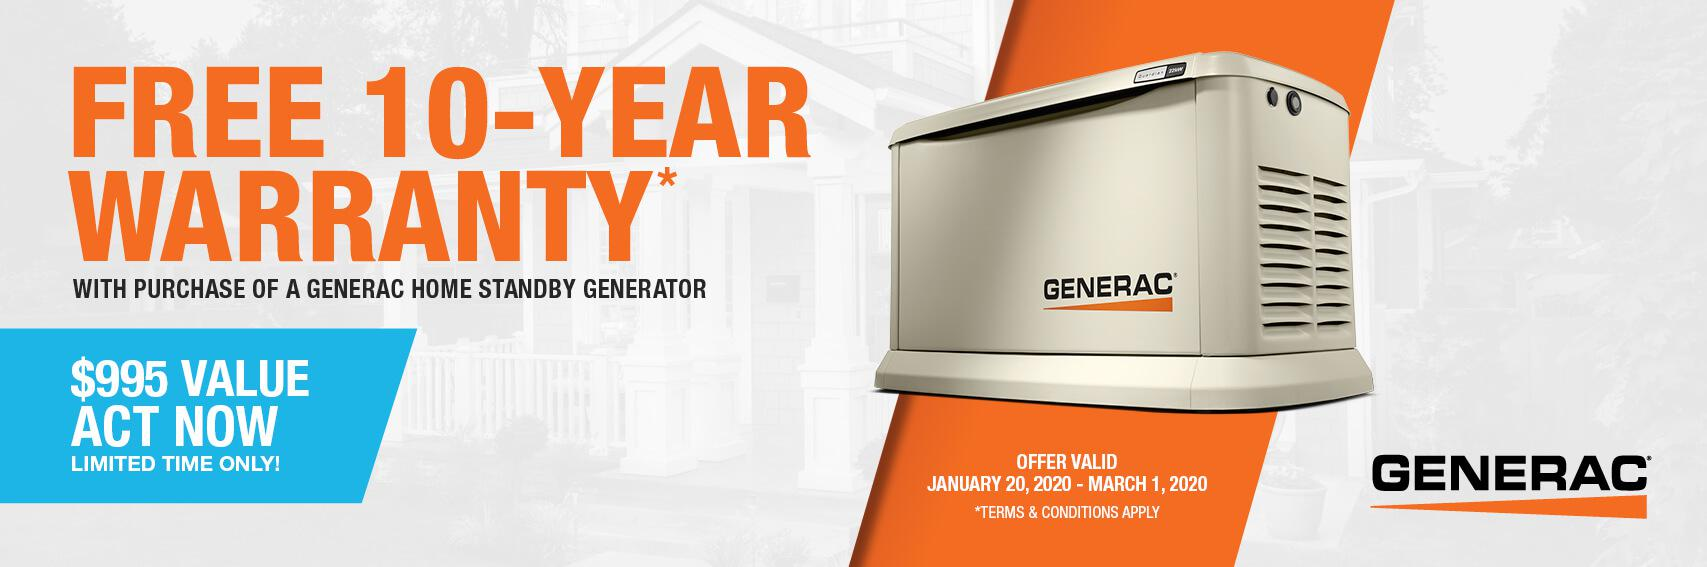 Homestandby Generator Deal | Warranty Offer | Generac Dealer | Tallahassee, FL